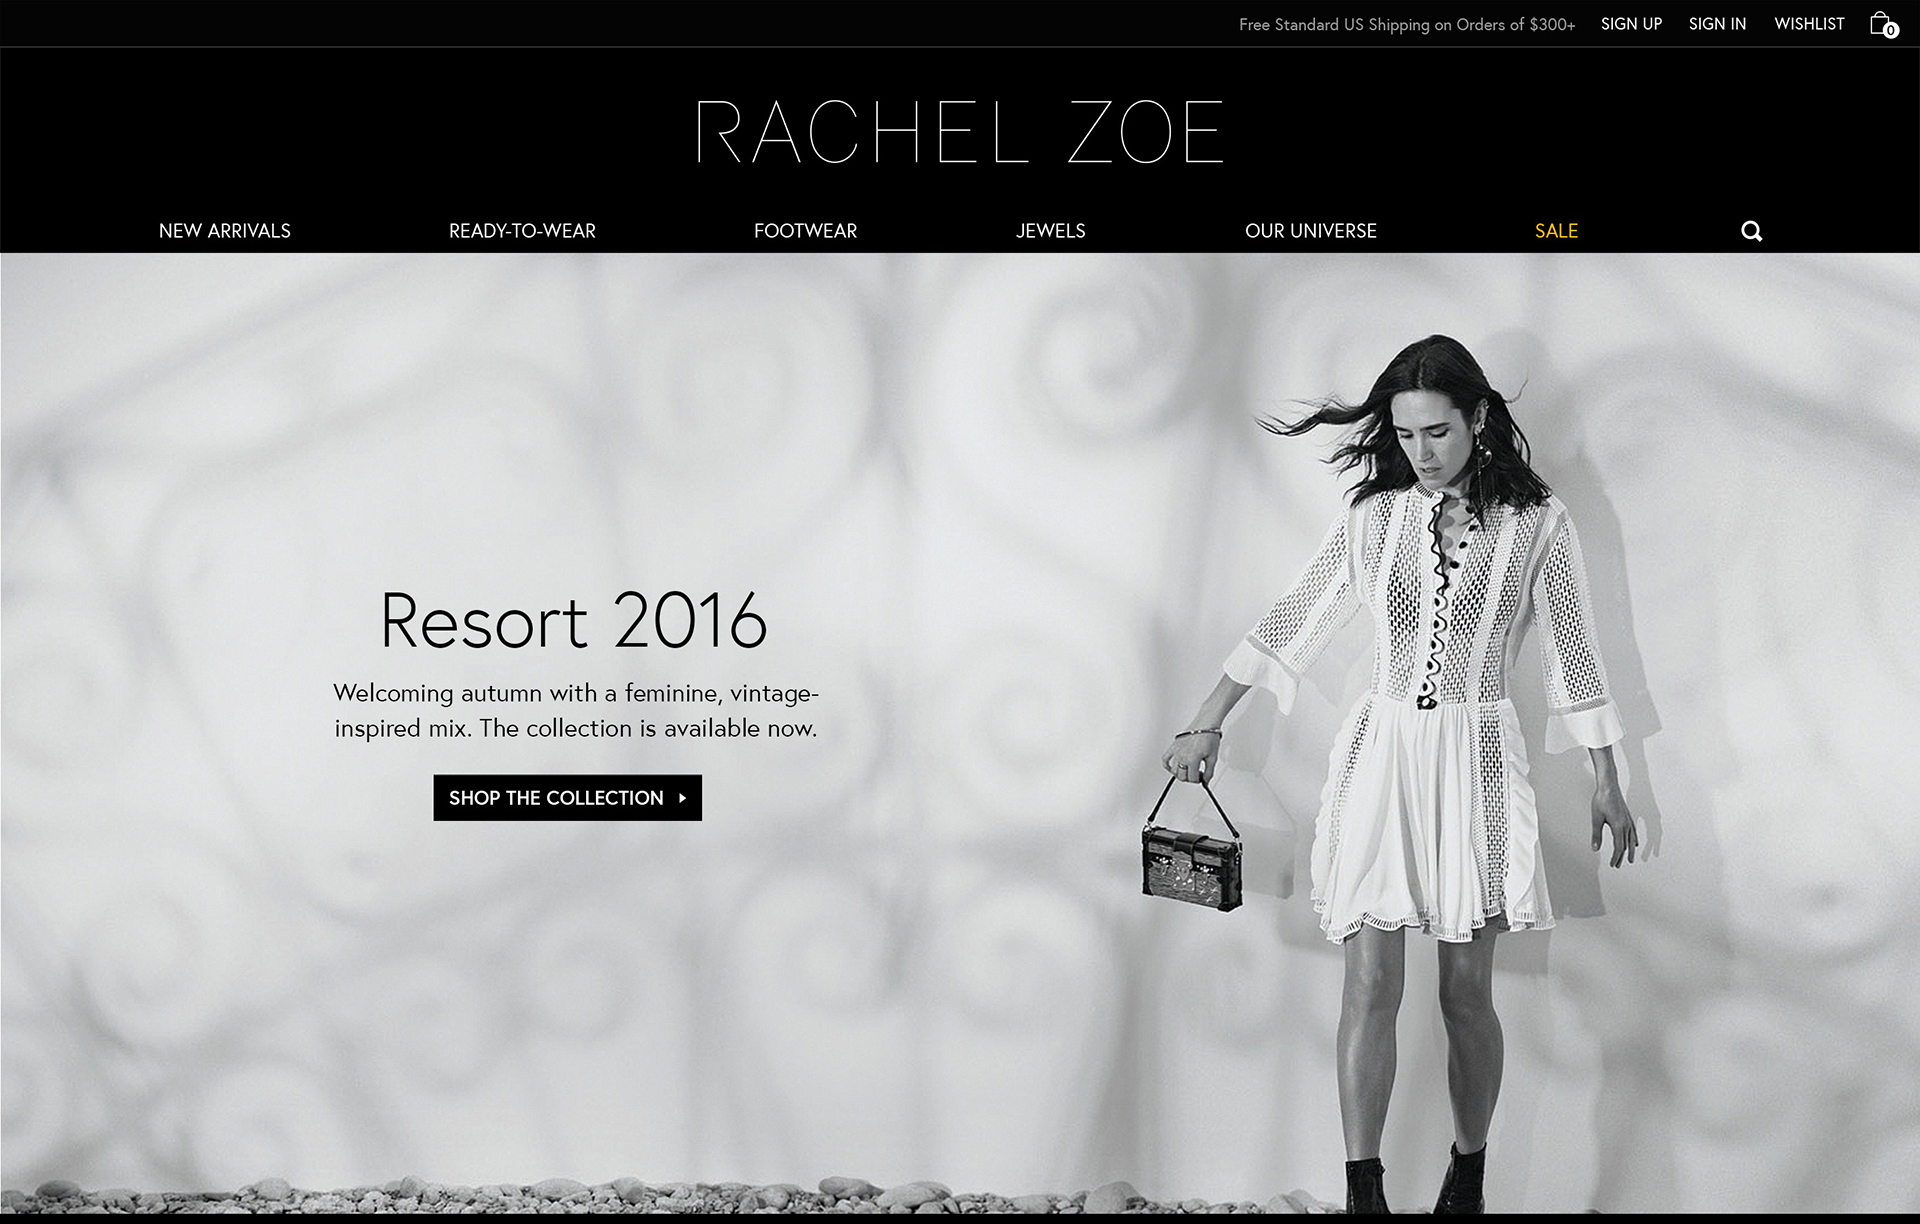 Rachel Zoe Collection by S. Sifantus